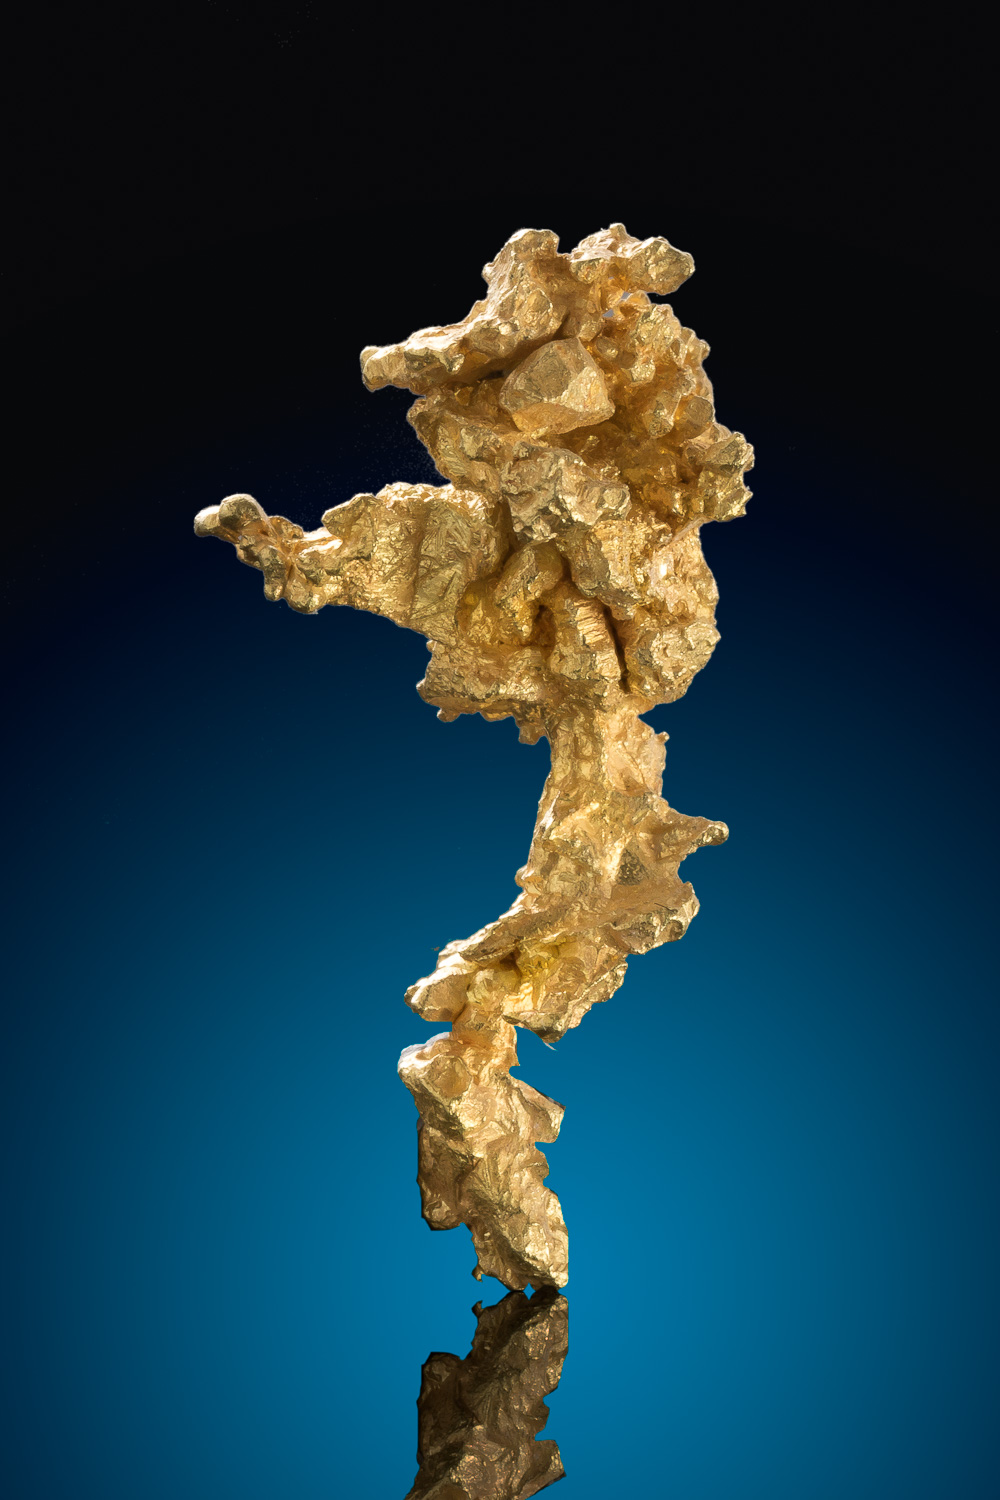 Long and Tapered - Sharp Gold Crystal Nugget from Mariposa